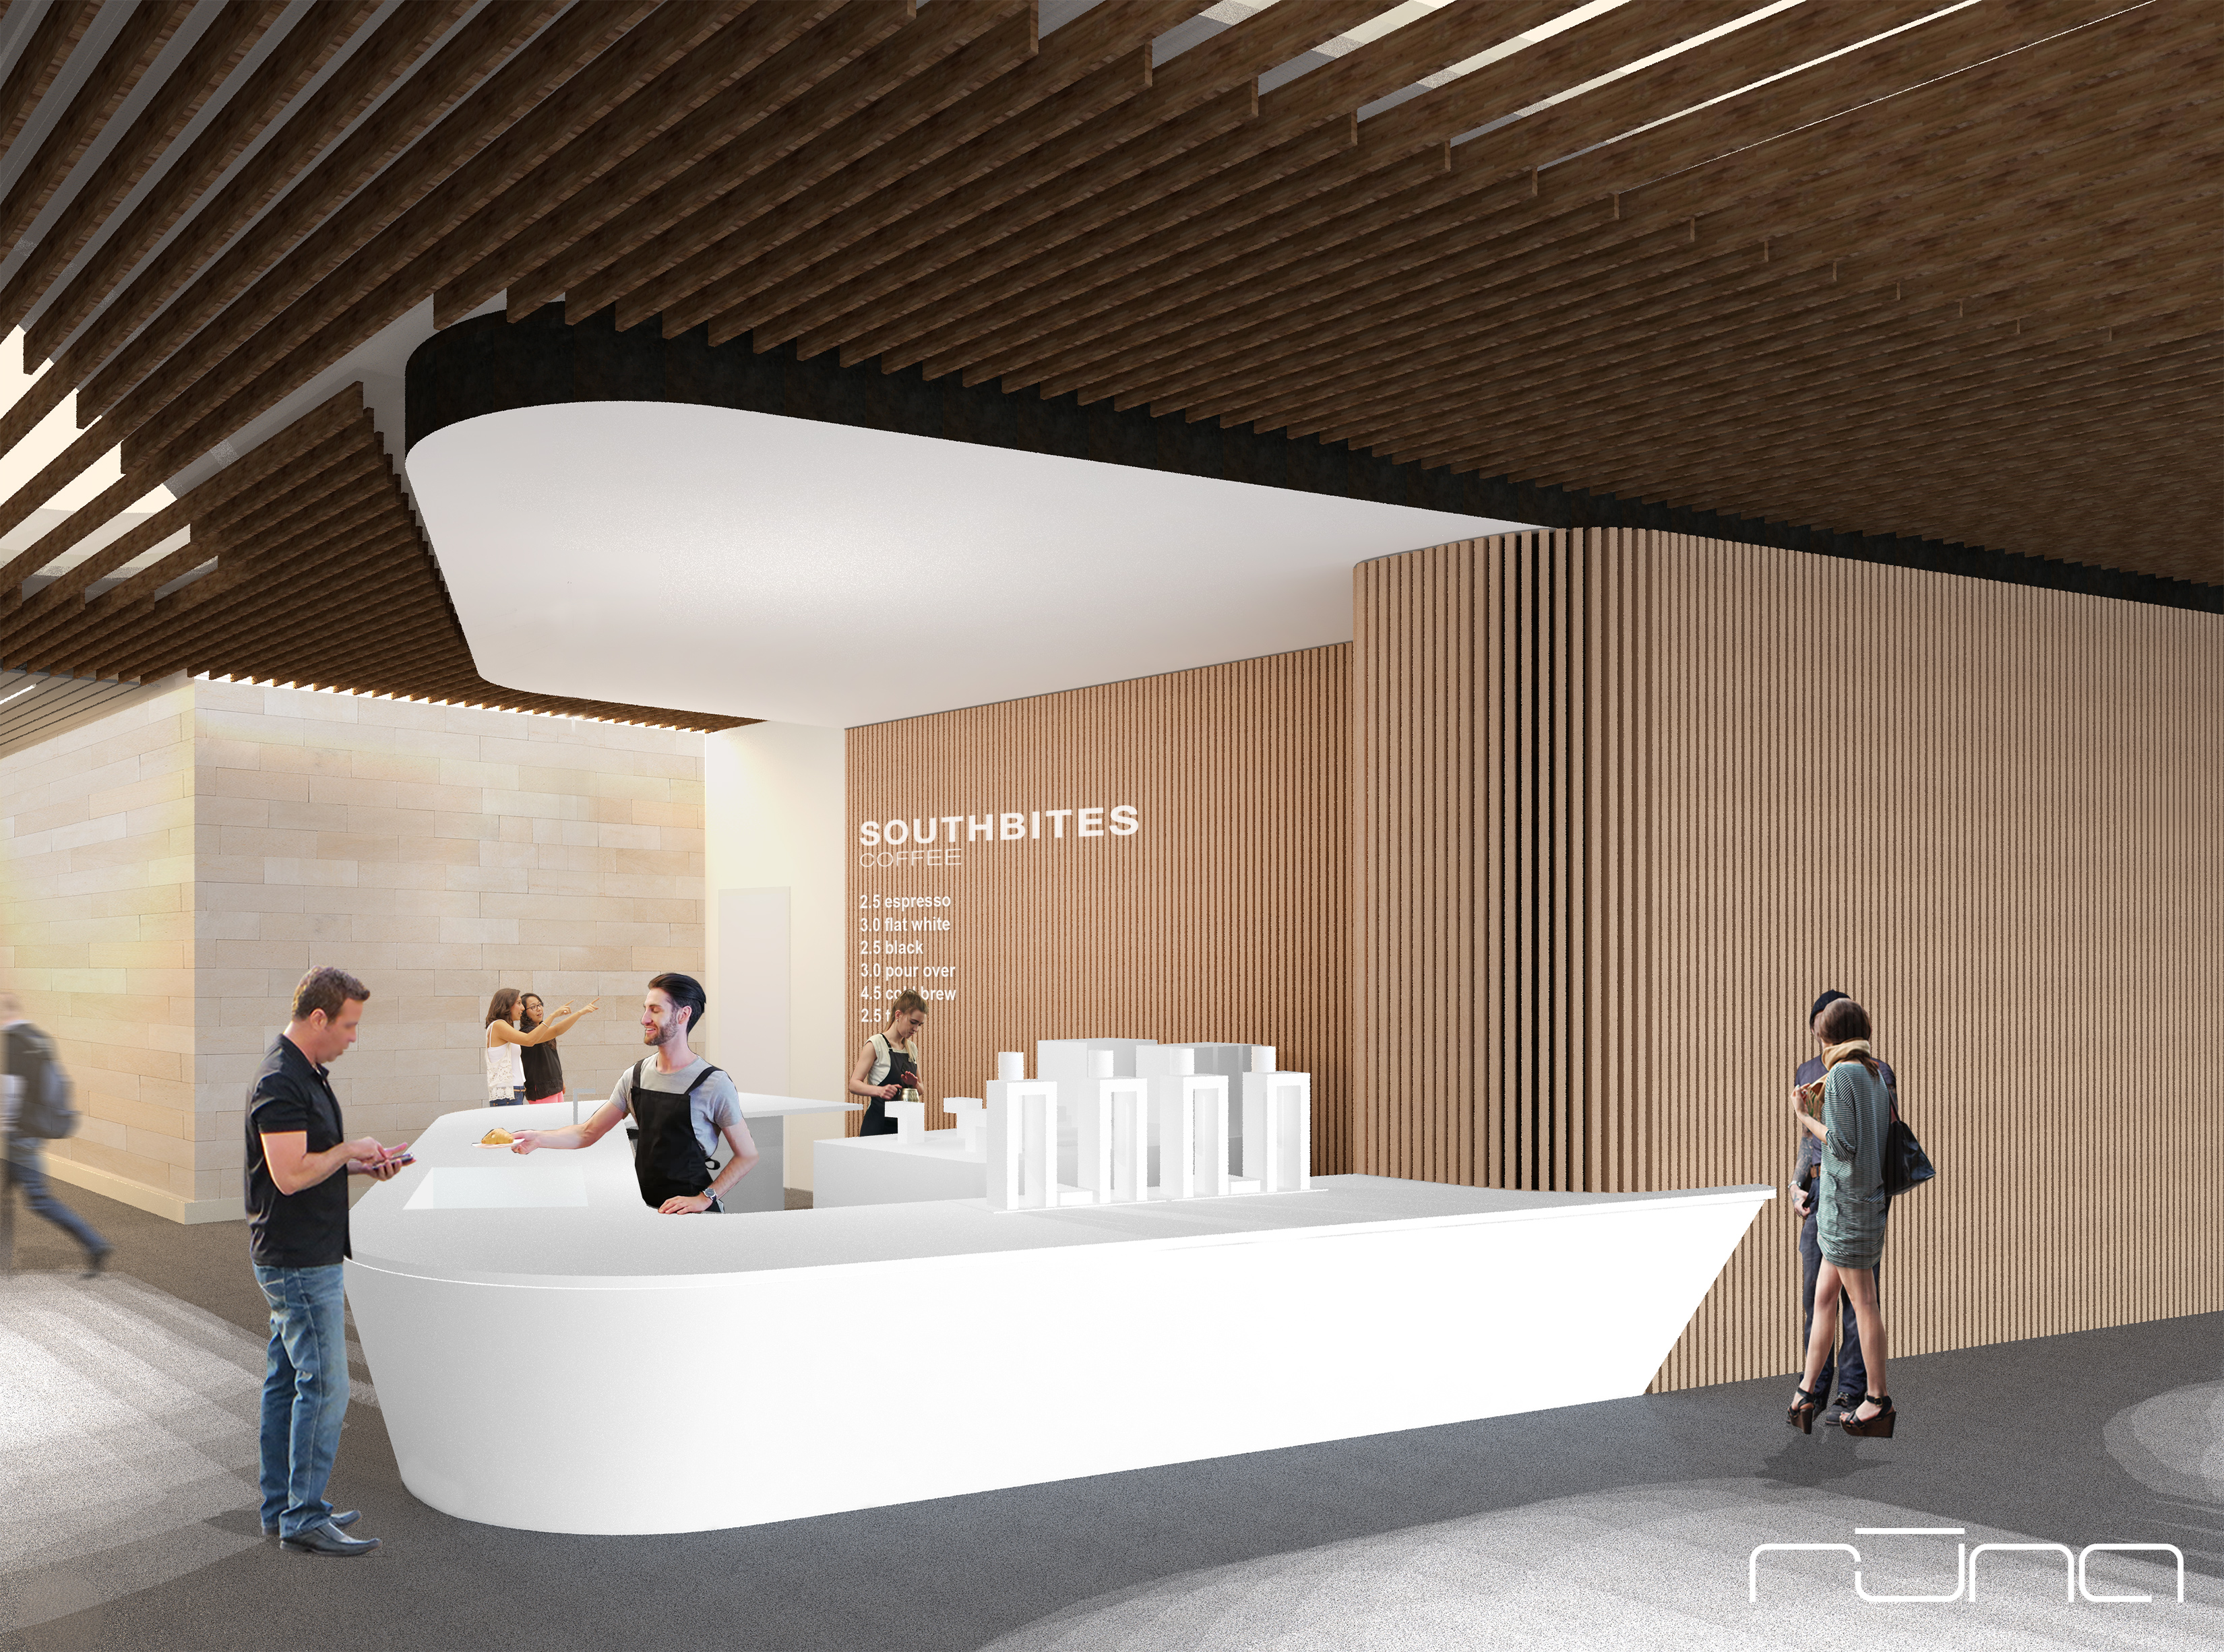 Rendering of SXSW's SouthBites cafe